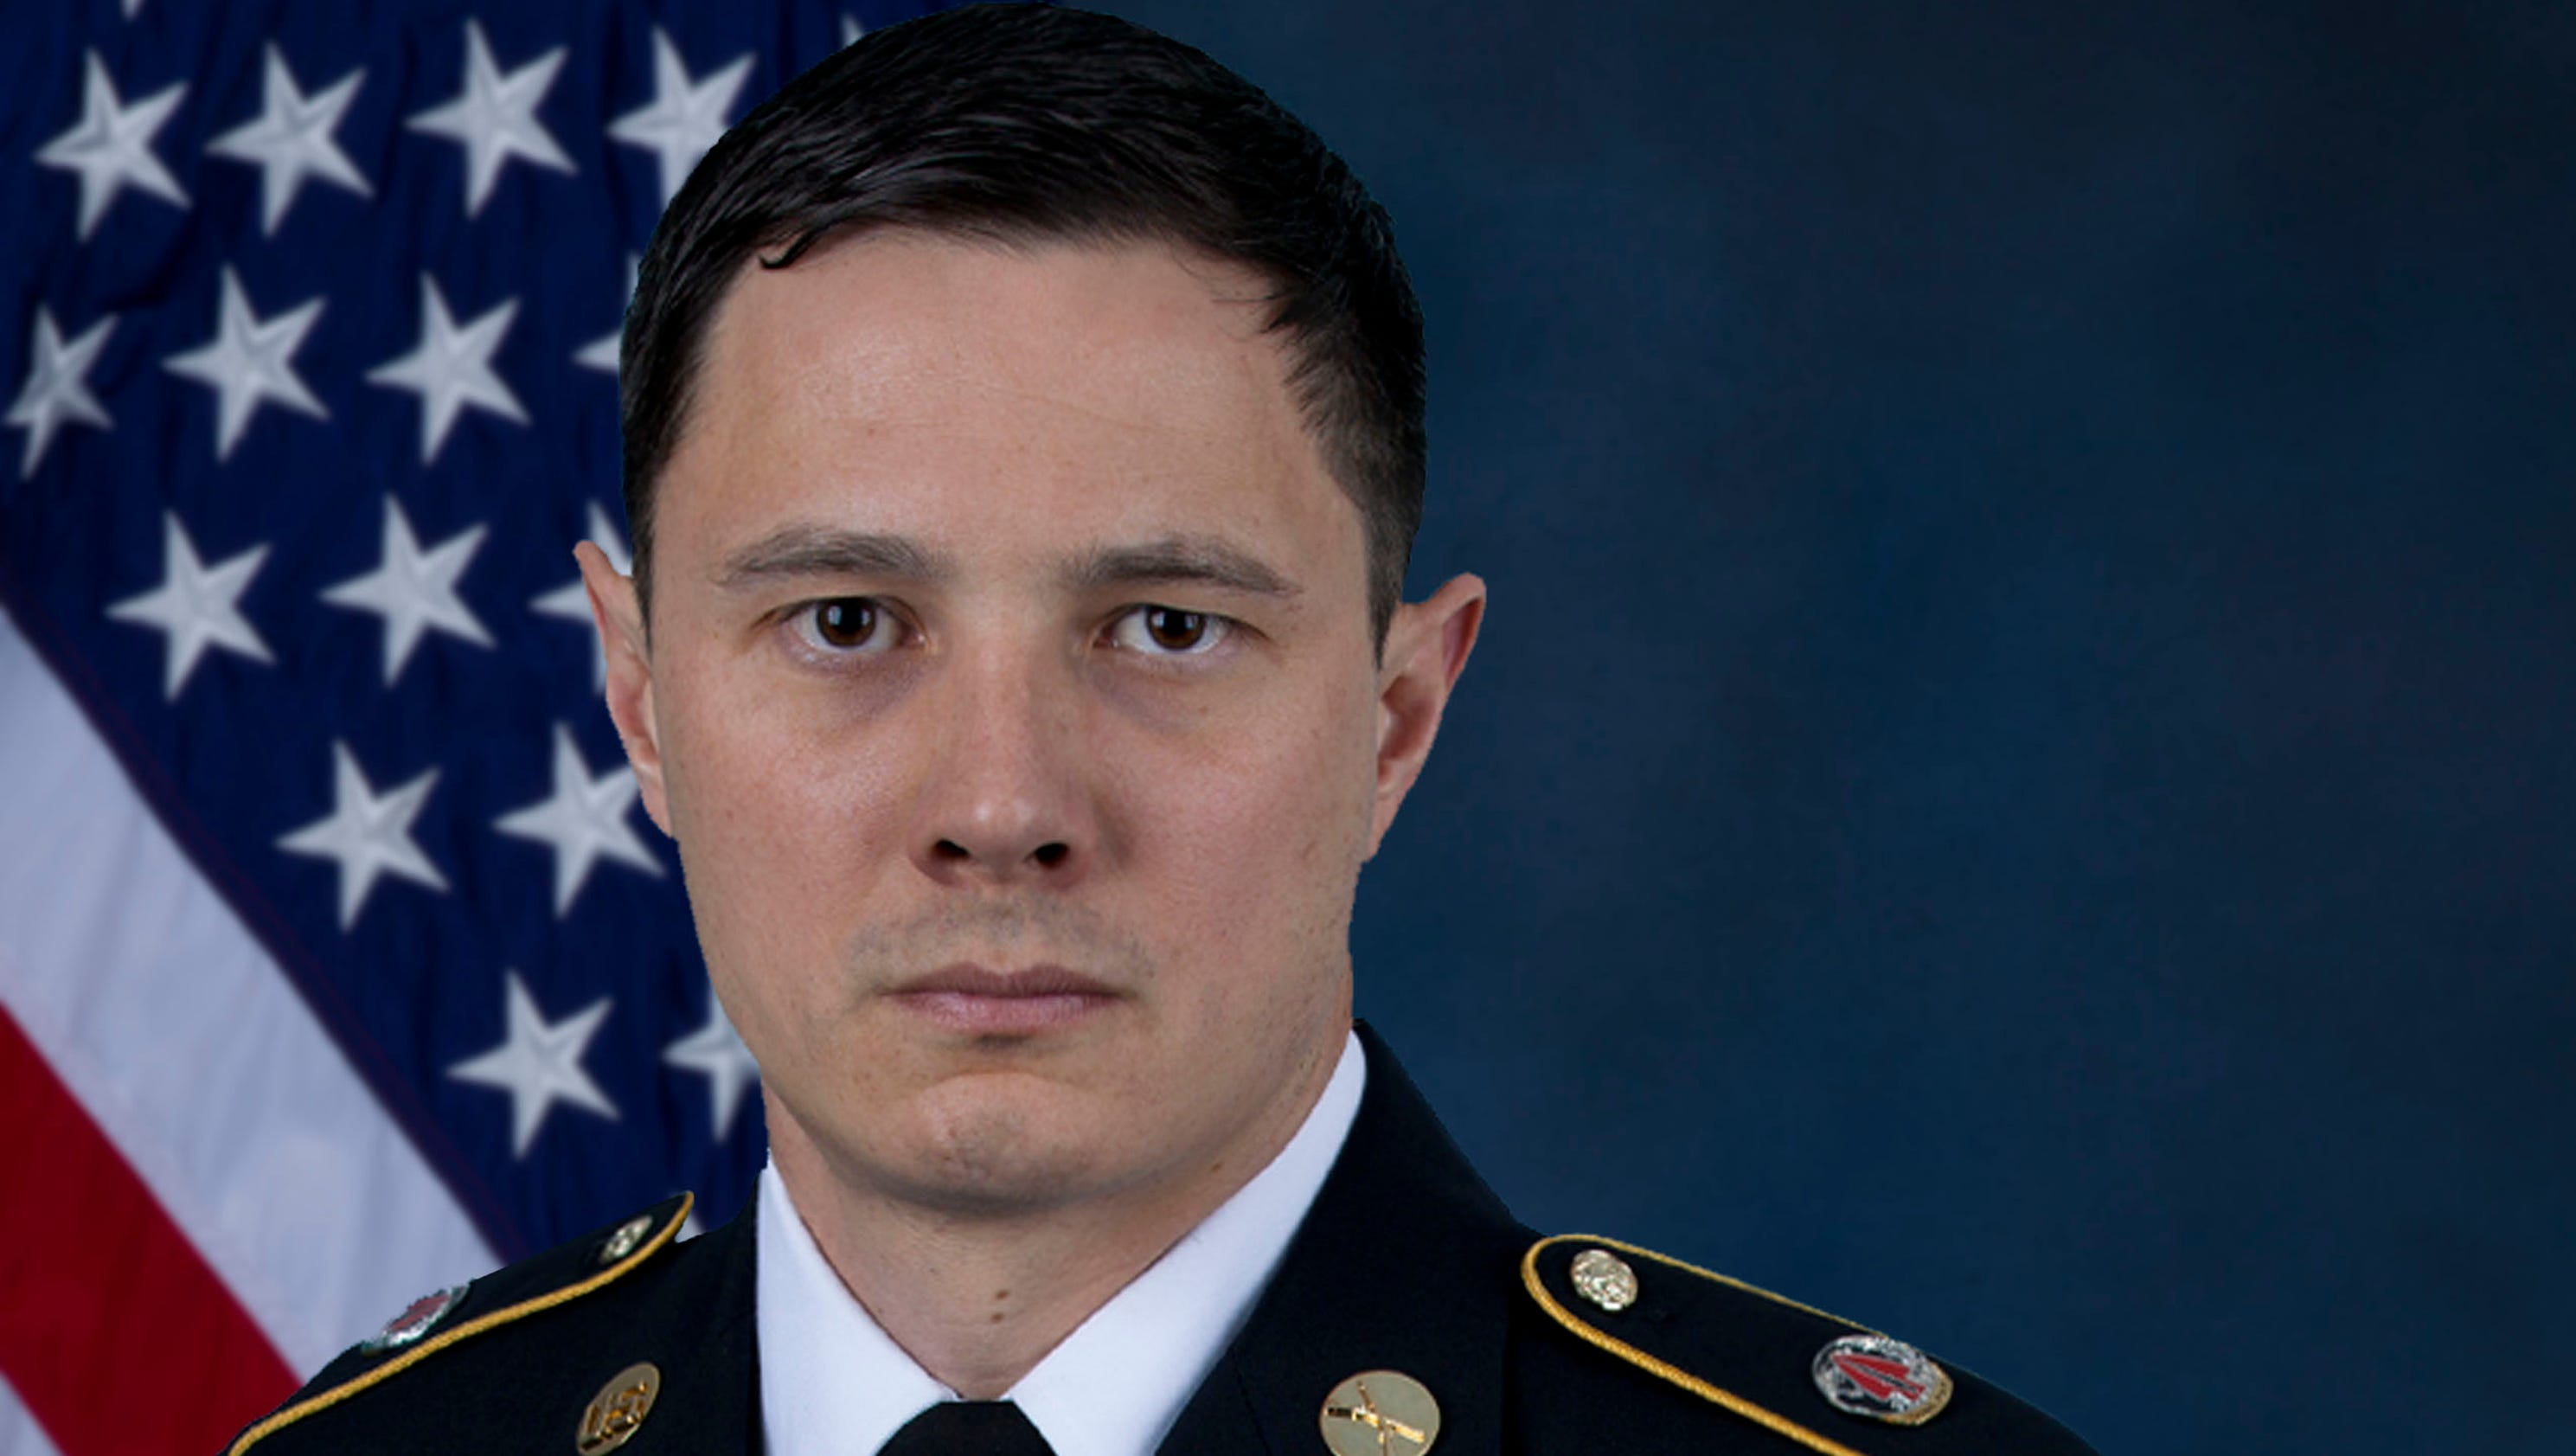 american soldier killed in syria attack identified as jonathan dunbar